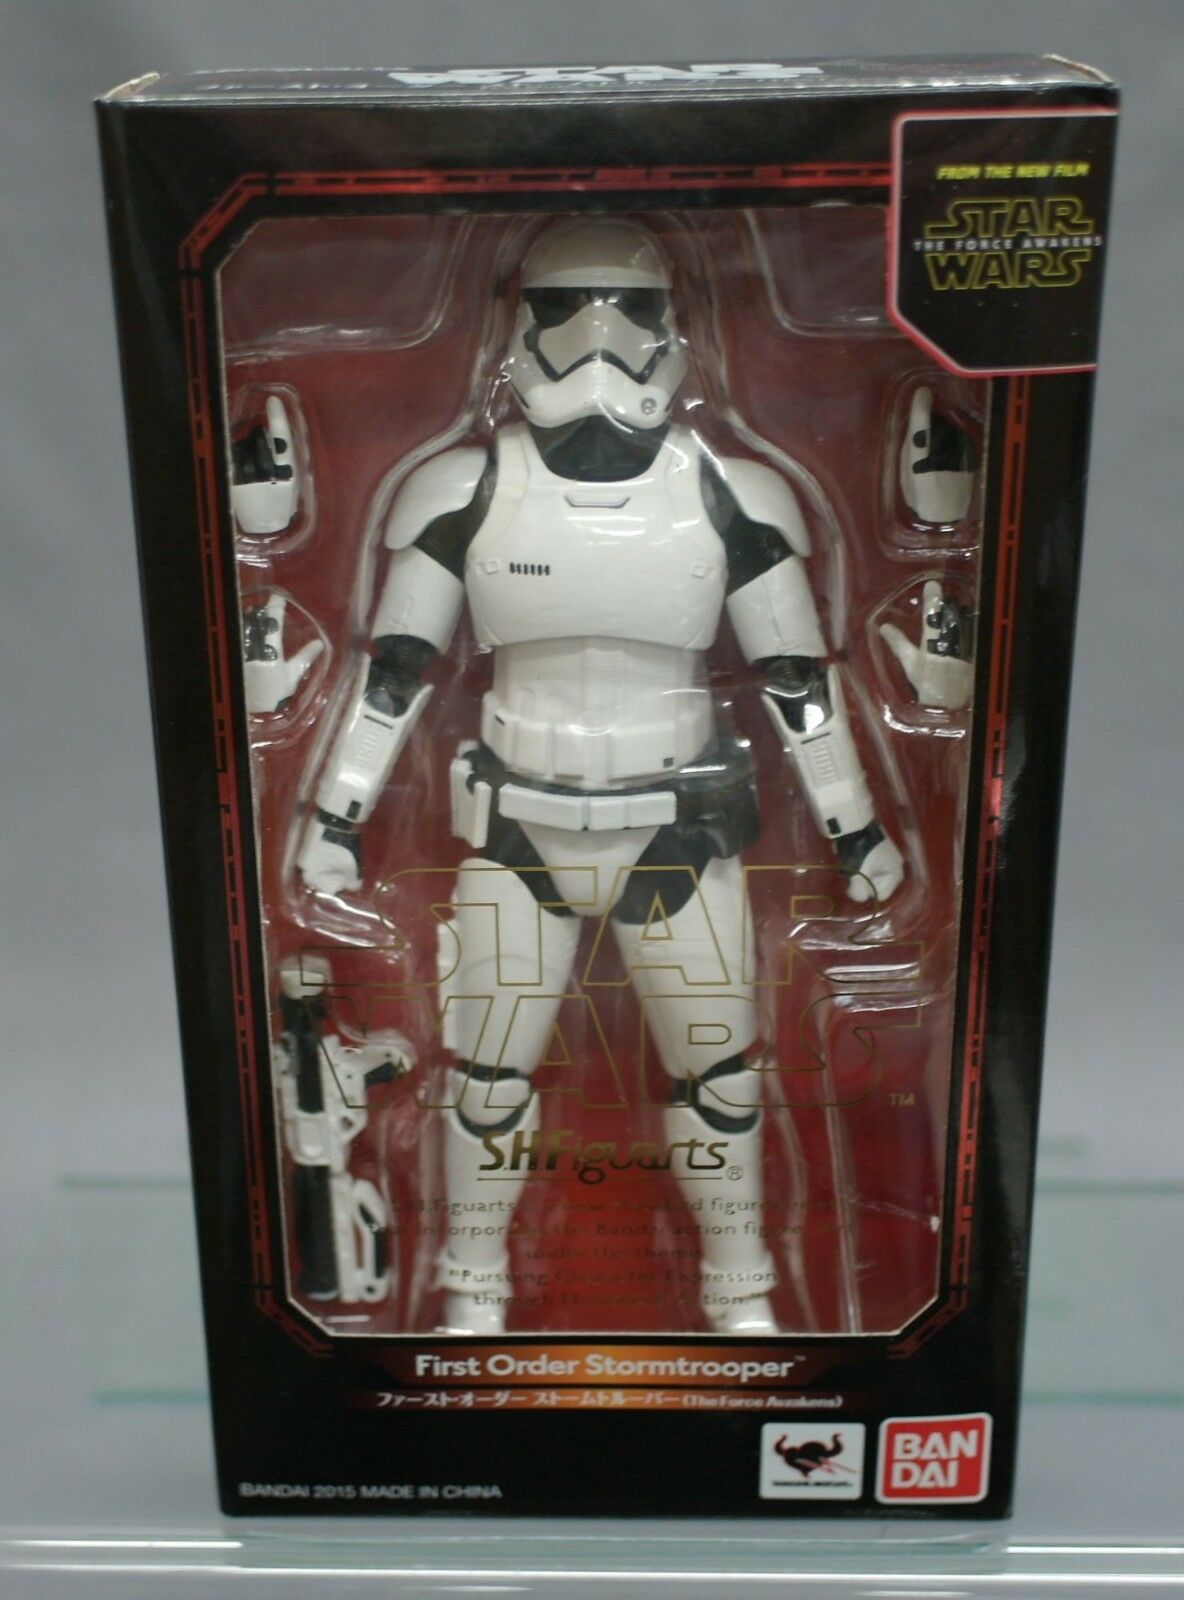 SH S.H. Figuarts First Order Stormtrooper Star Wars The Force Awakens Bandai